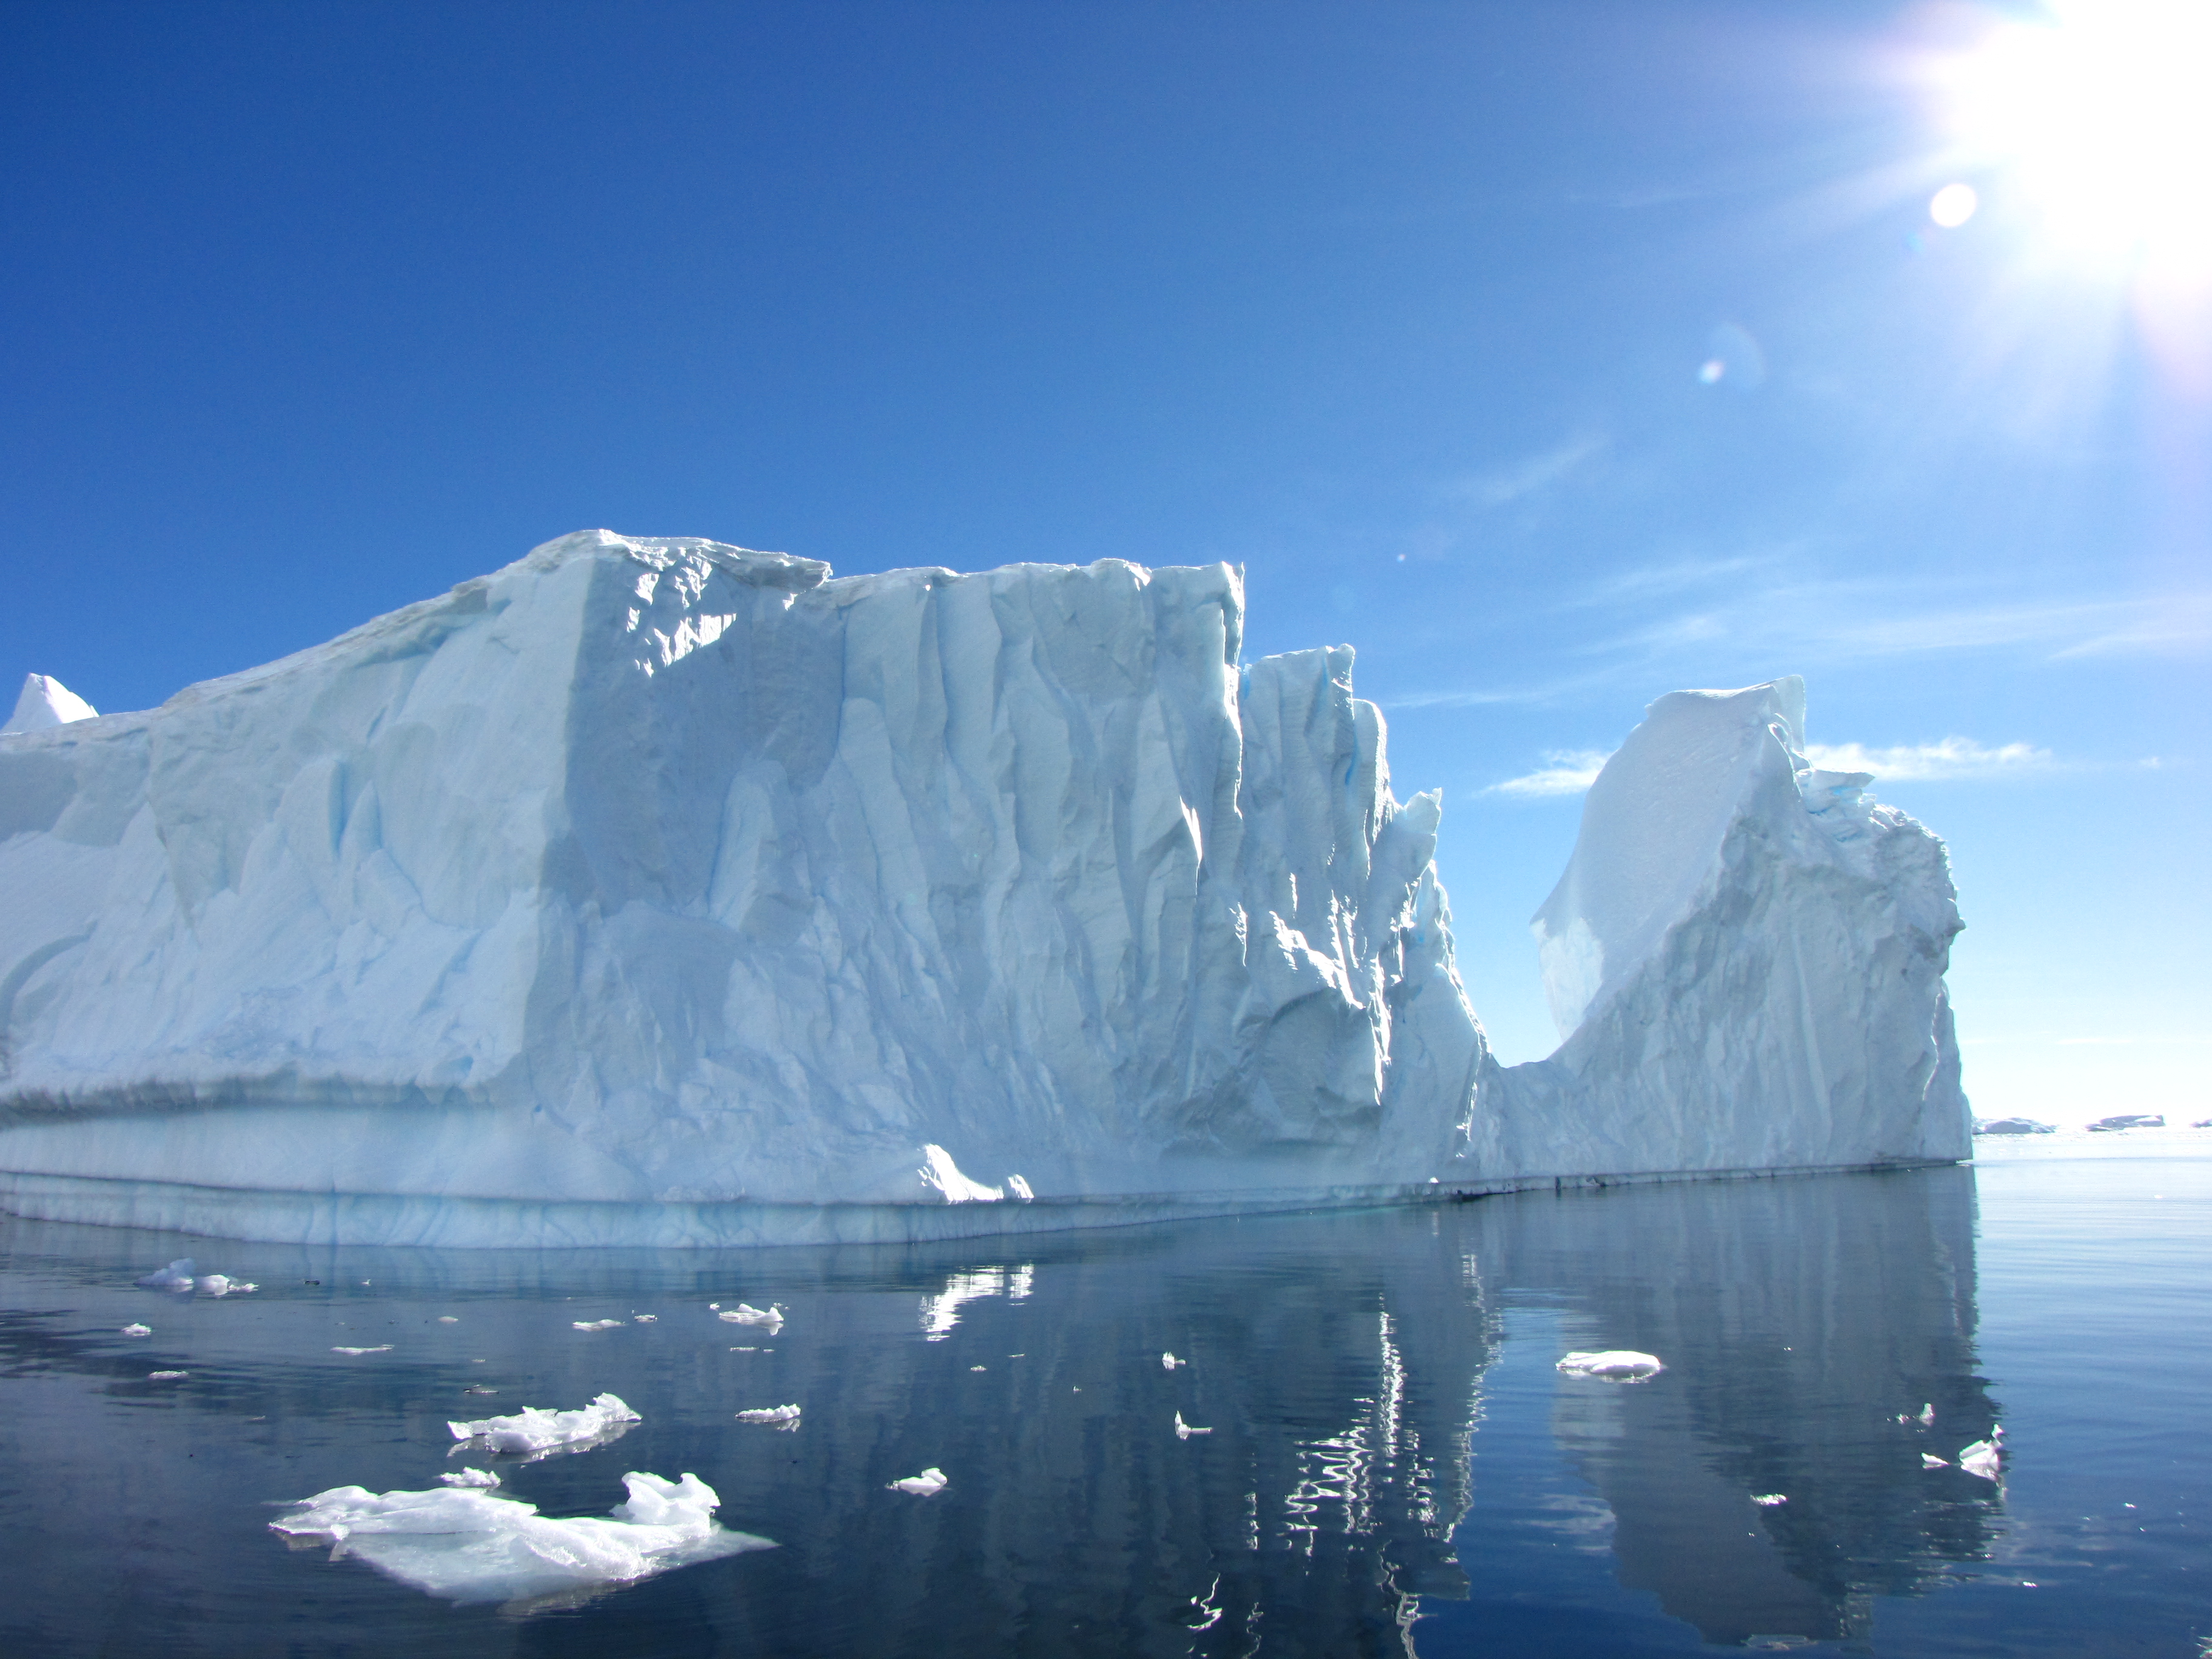 Is it safe to travel to antarctica chimu adventures blog for How to go to antartica